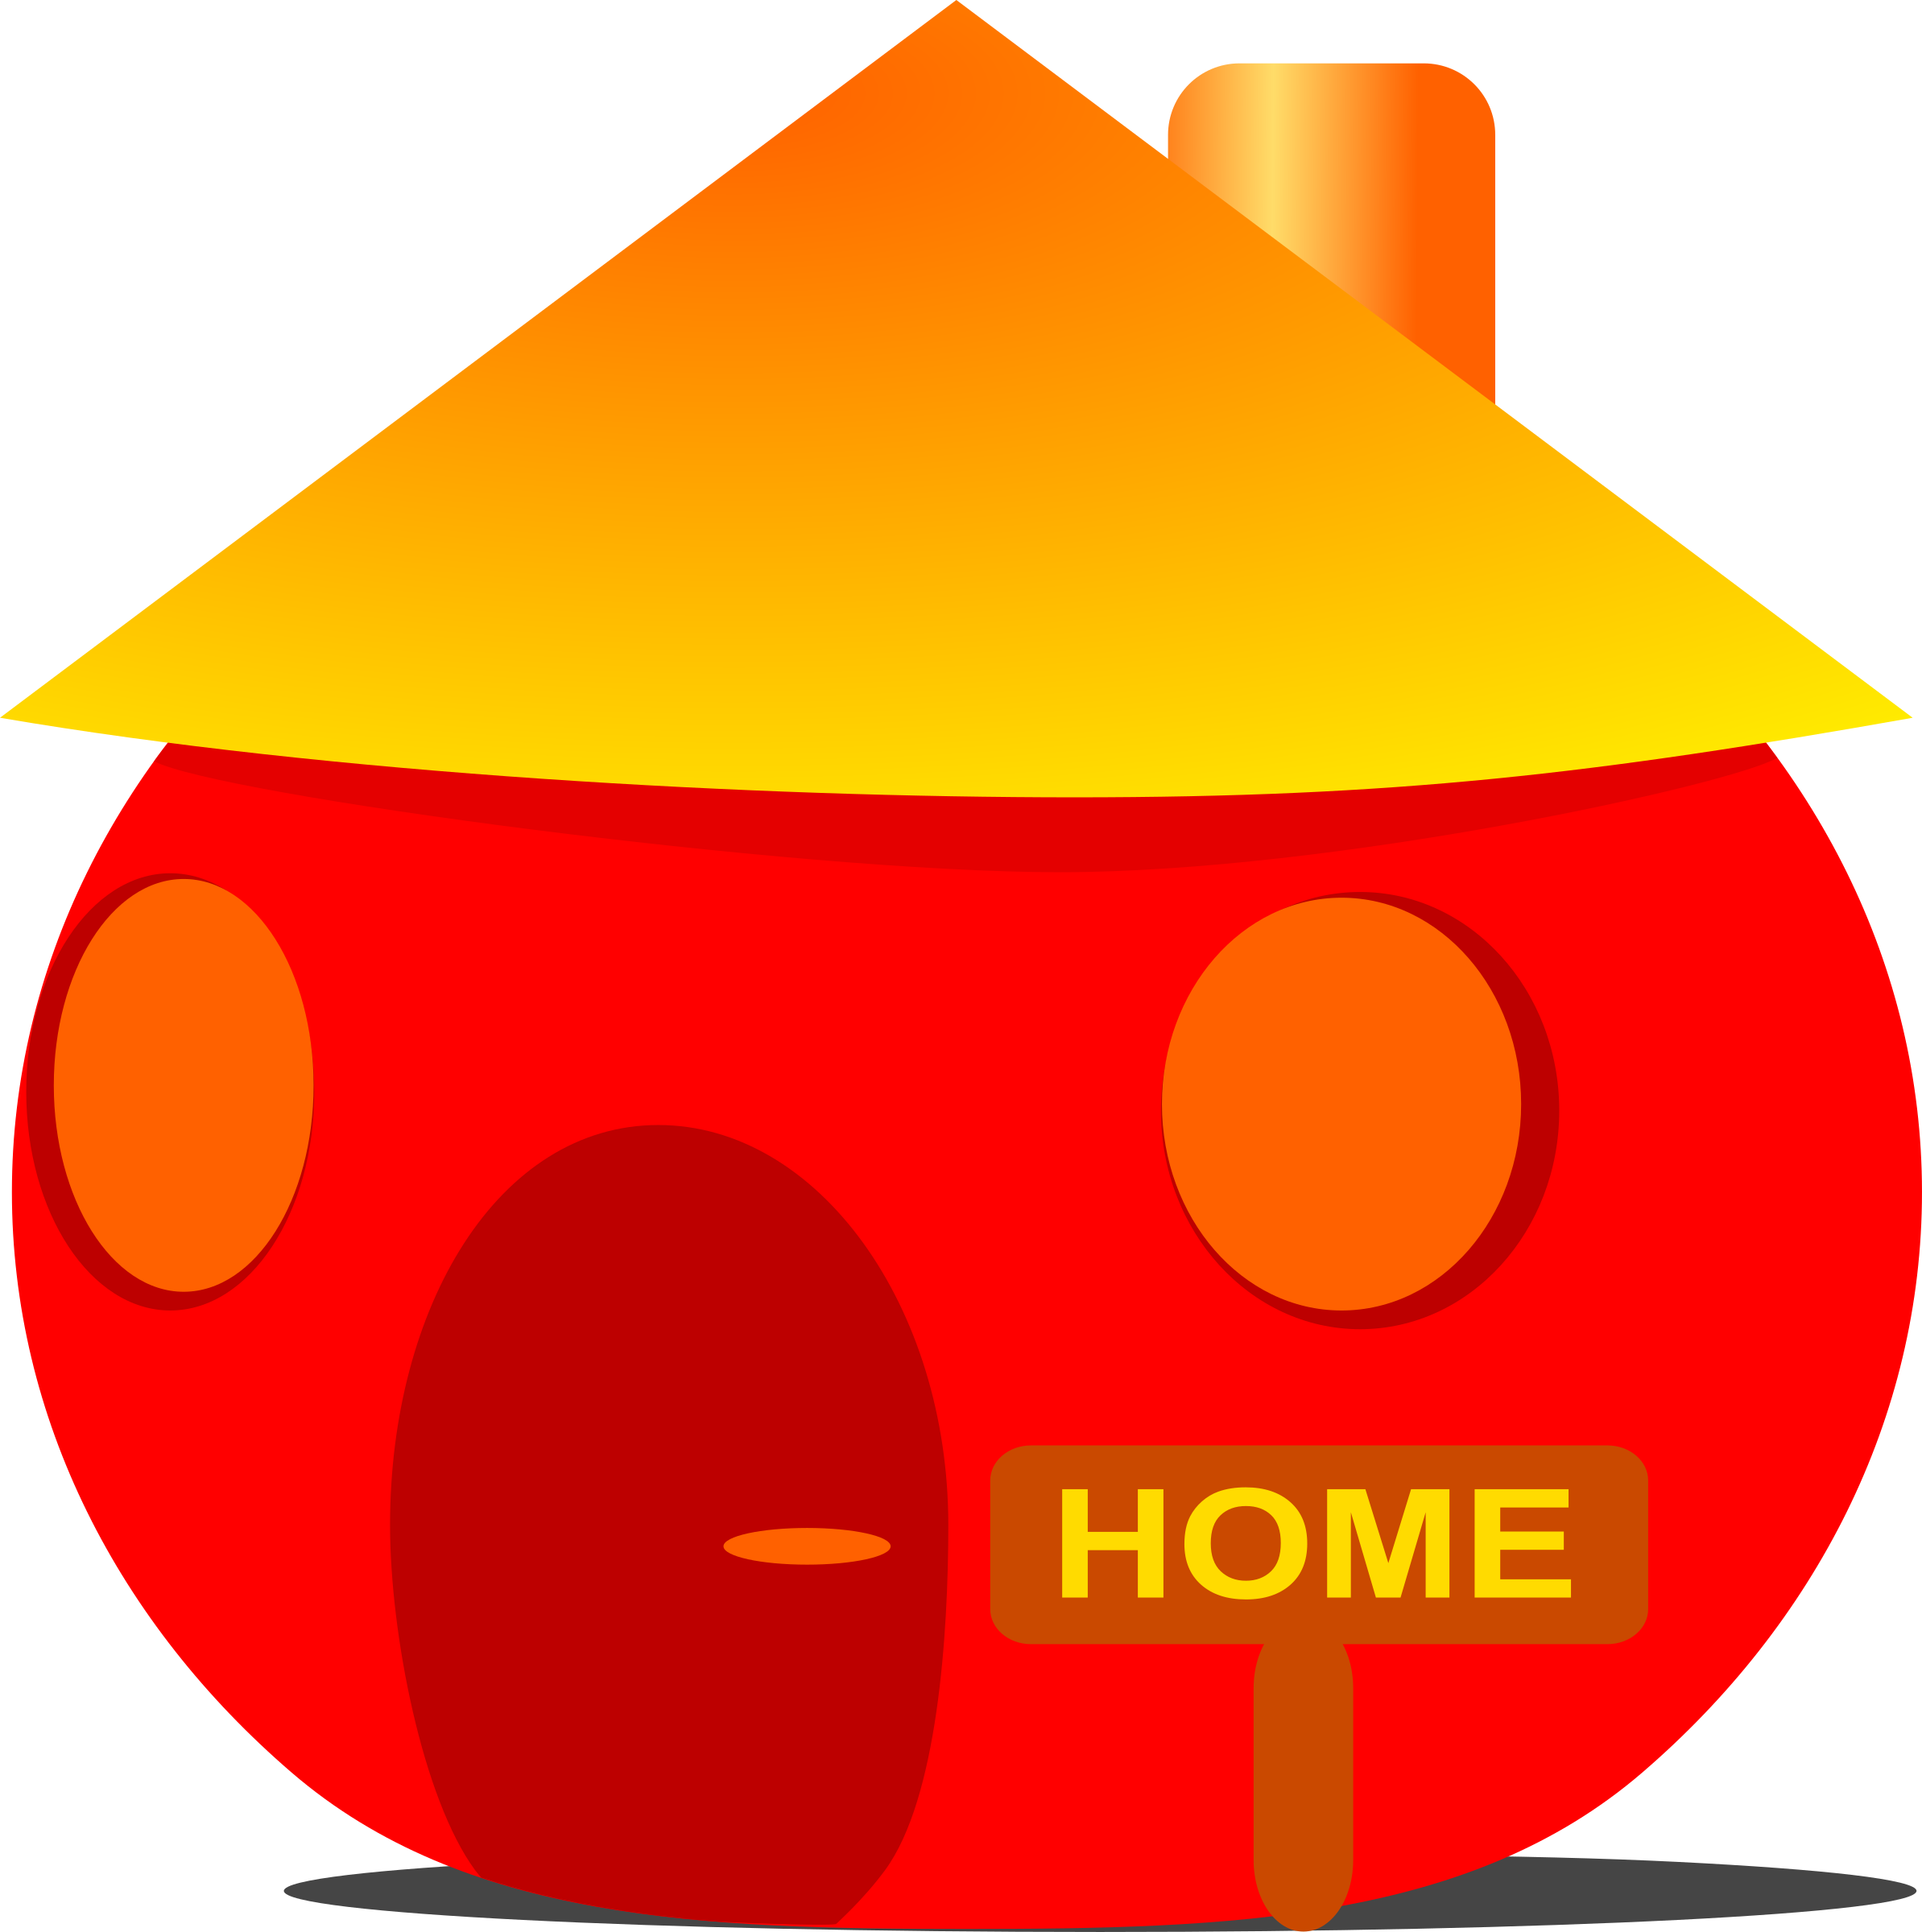 Home by Anonymous